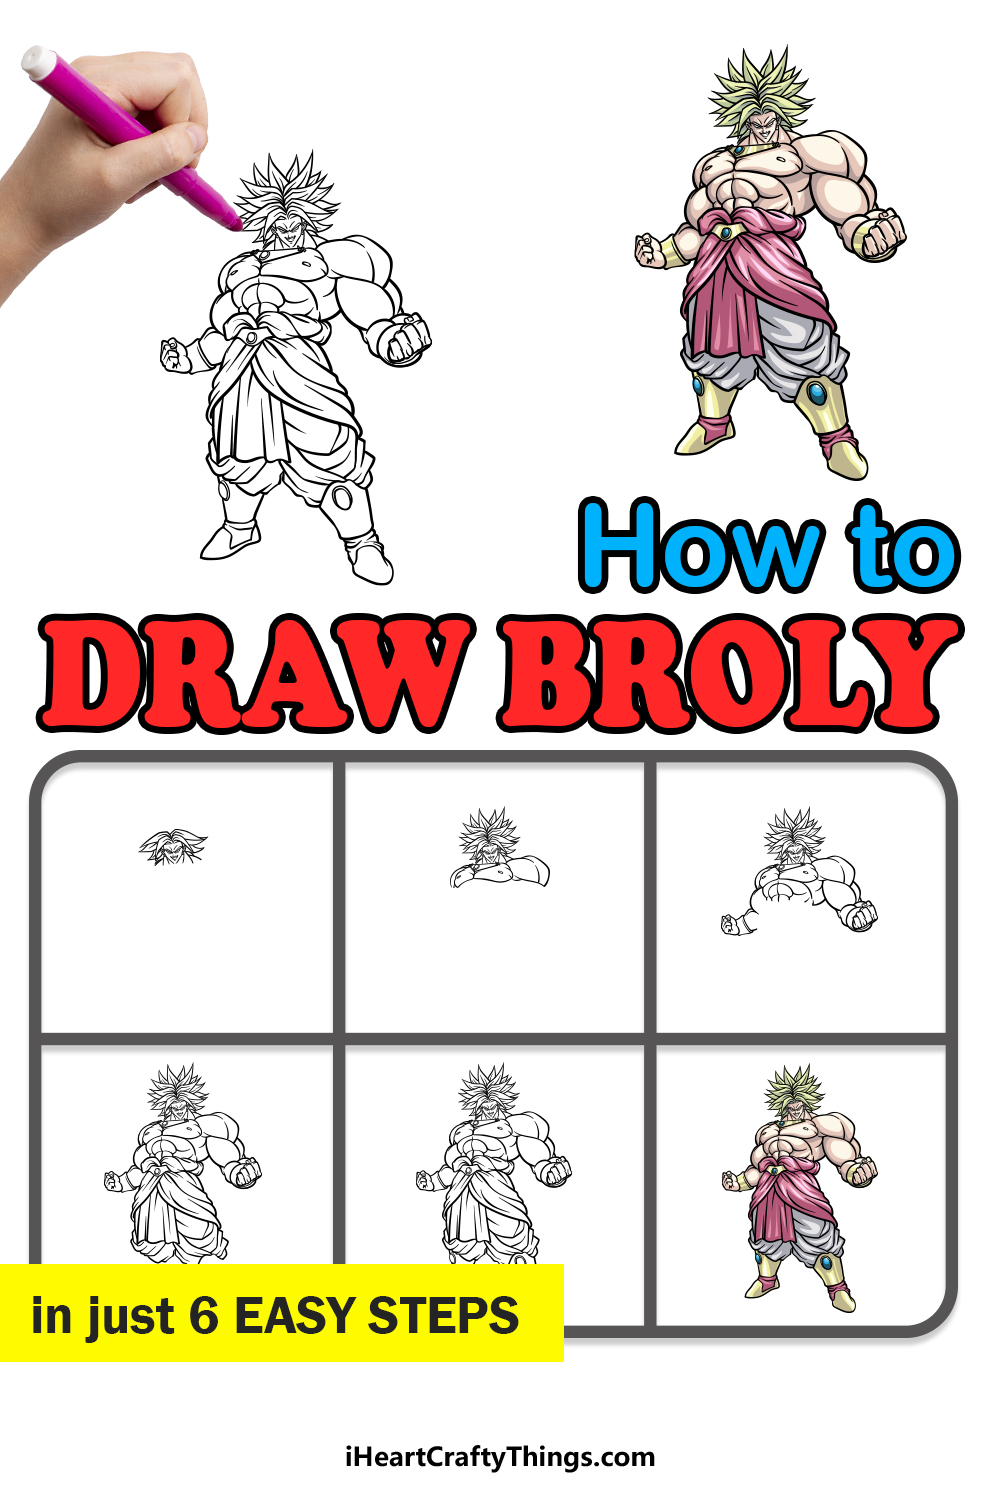 how to draw Broly in 6 easy steps